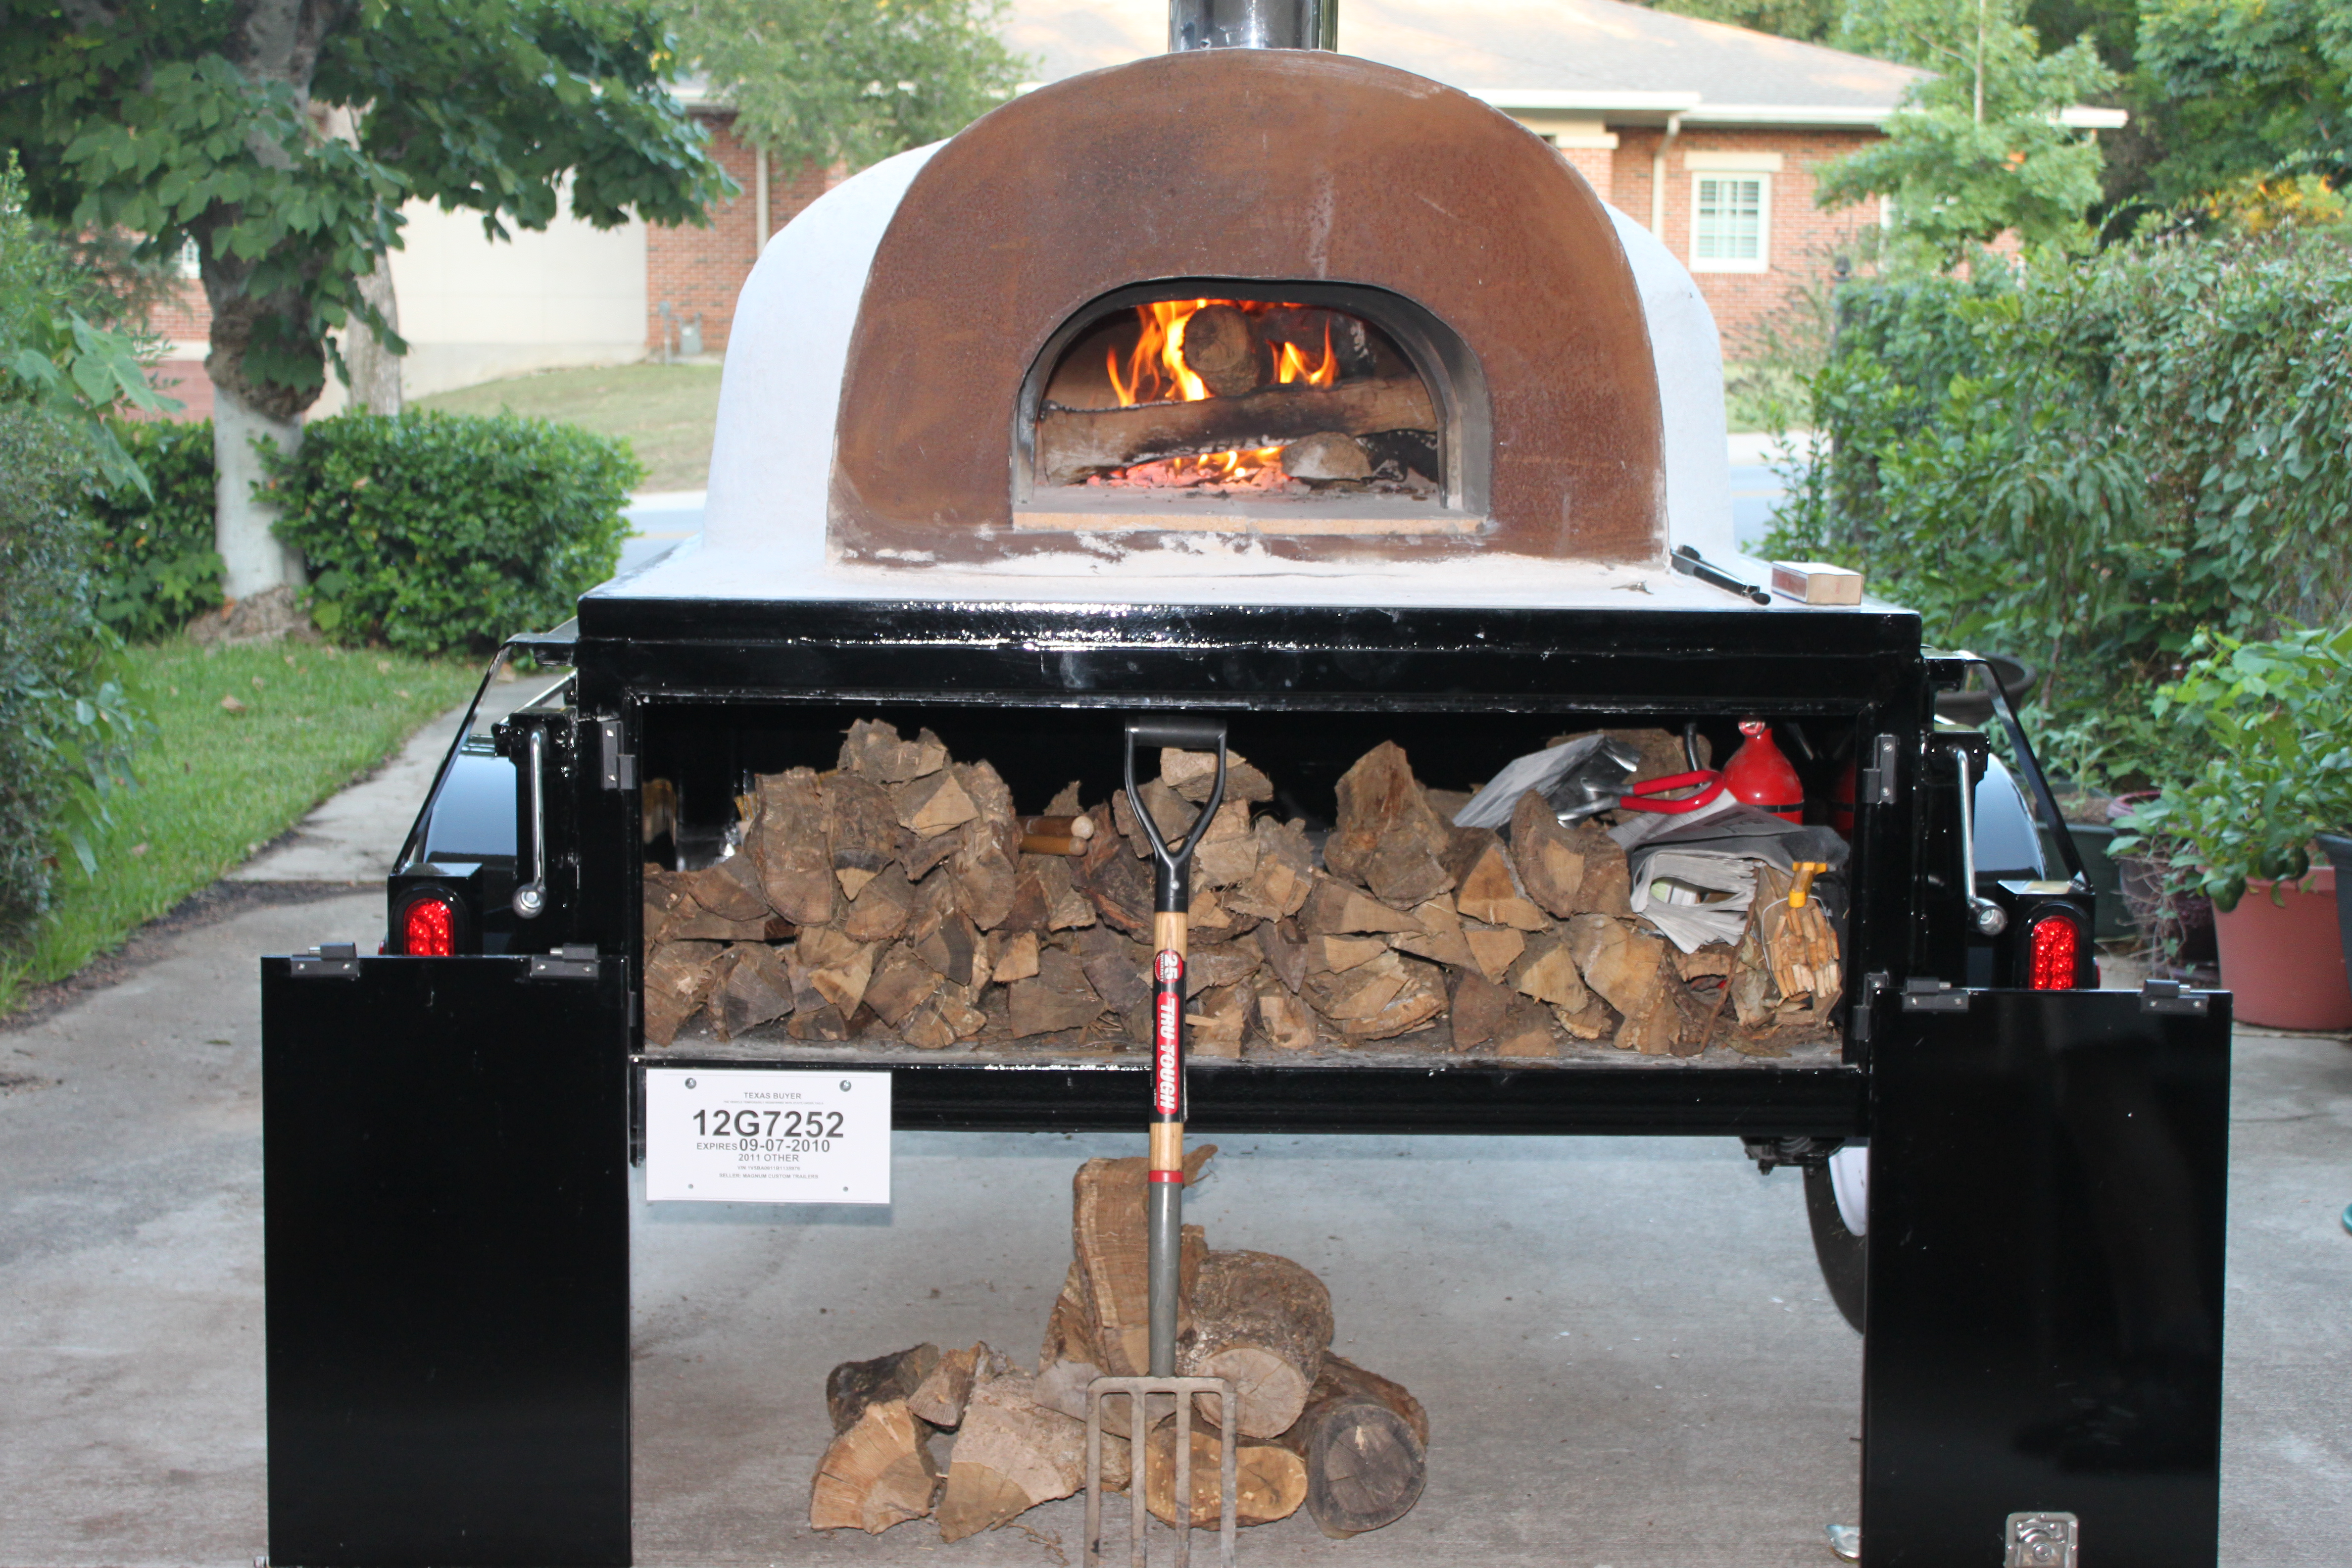 Portable wood fired pizza oven for sale - Bola Pizza Mobile